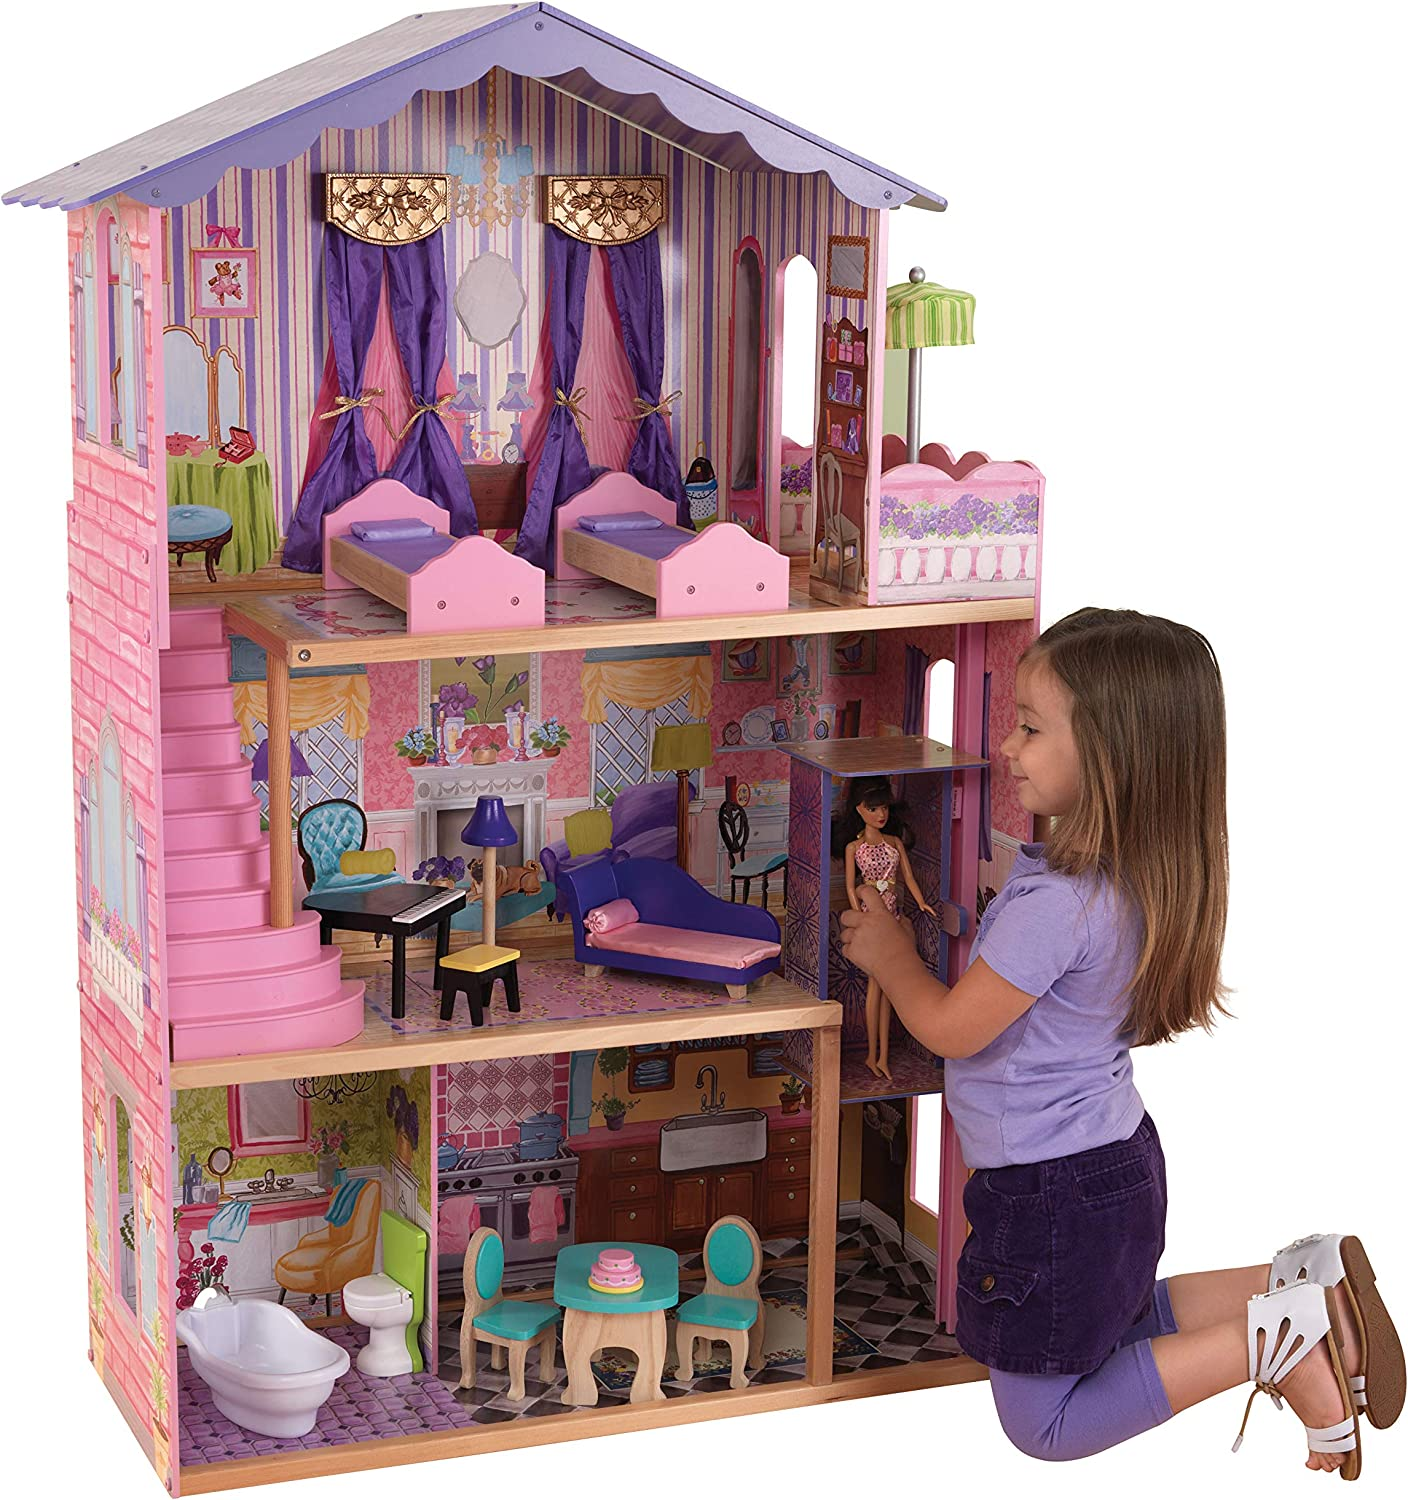 KidKraft My Dream Mansion with Accessory 12-Piece Gift Topics on TV Set for Seattle Mall